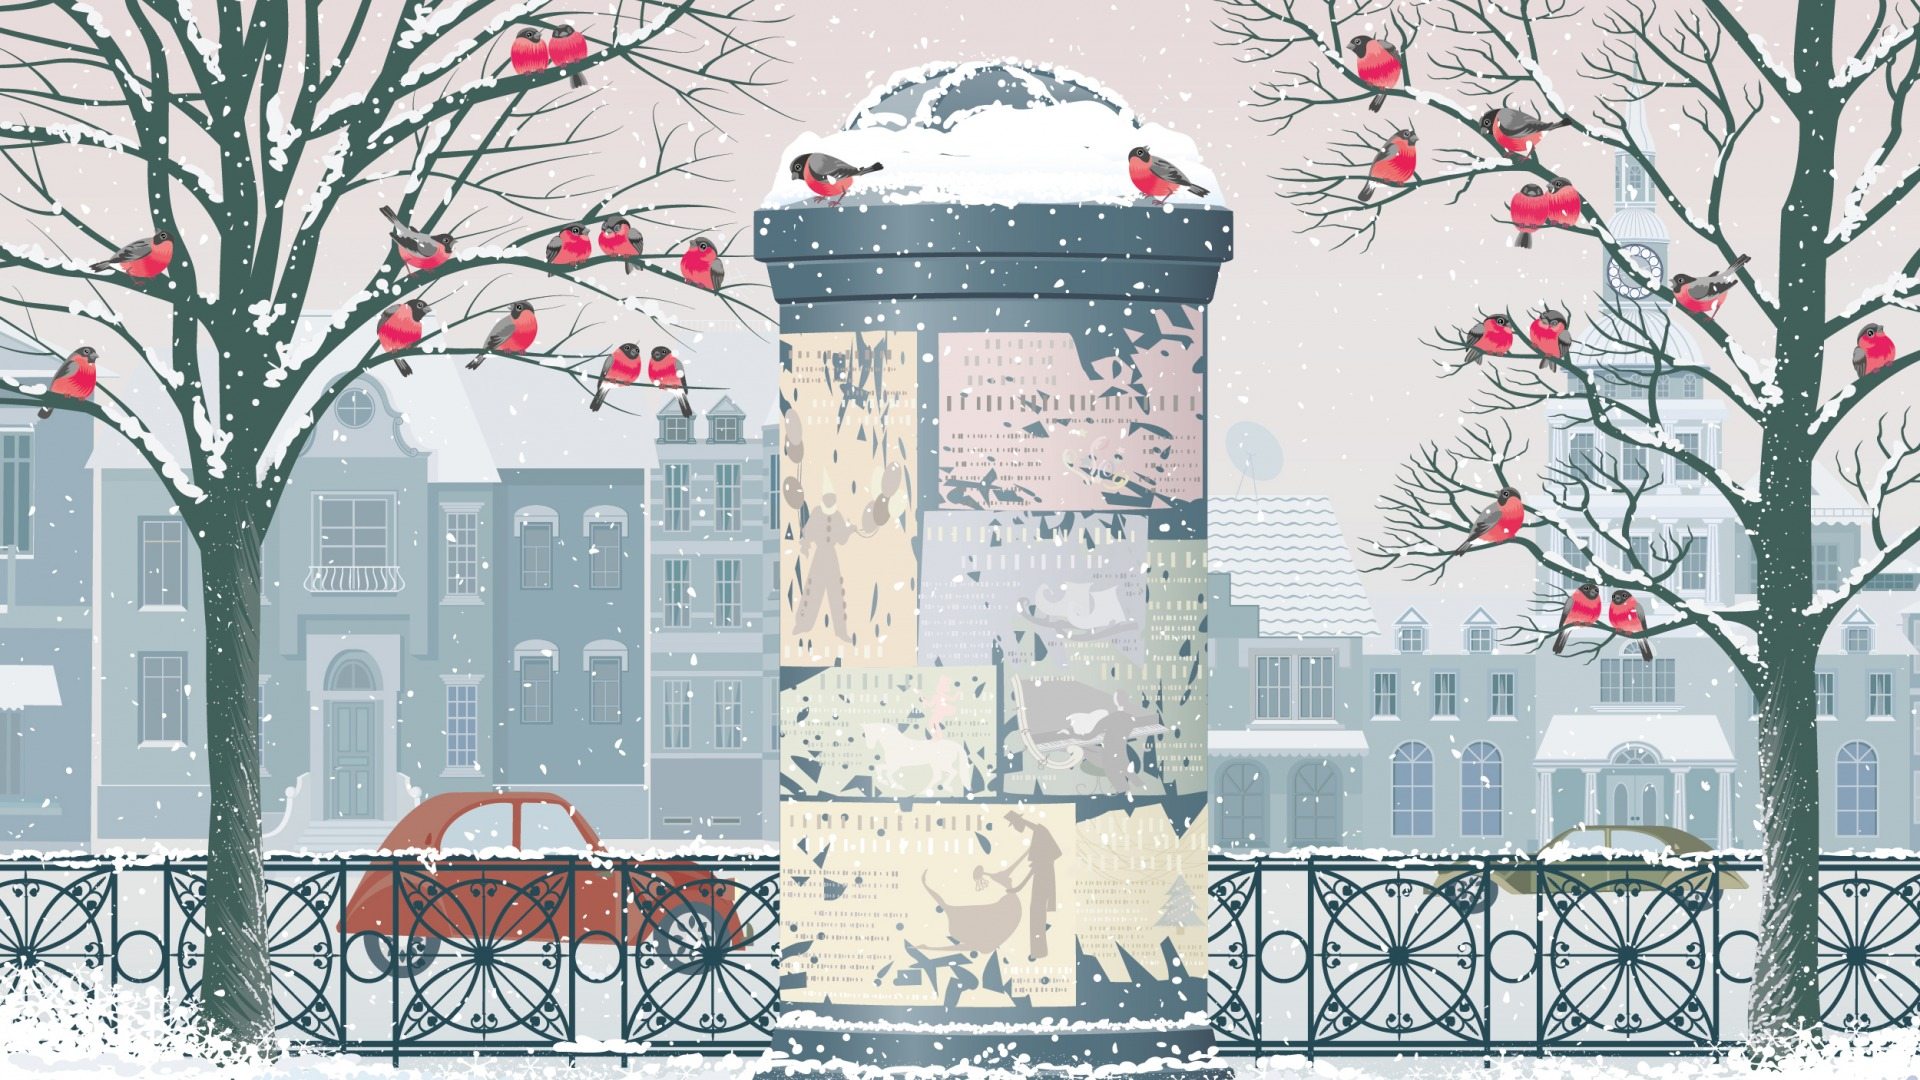 Download-Merry-Christmas-Vector-Birds-section-city-in-resolution-1920x1080-wallpaper-wp3804817